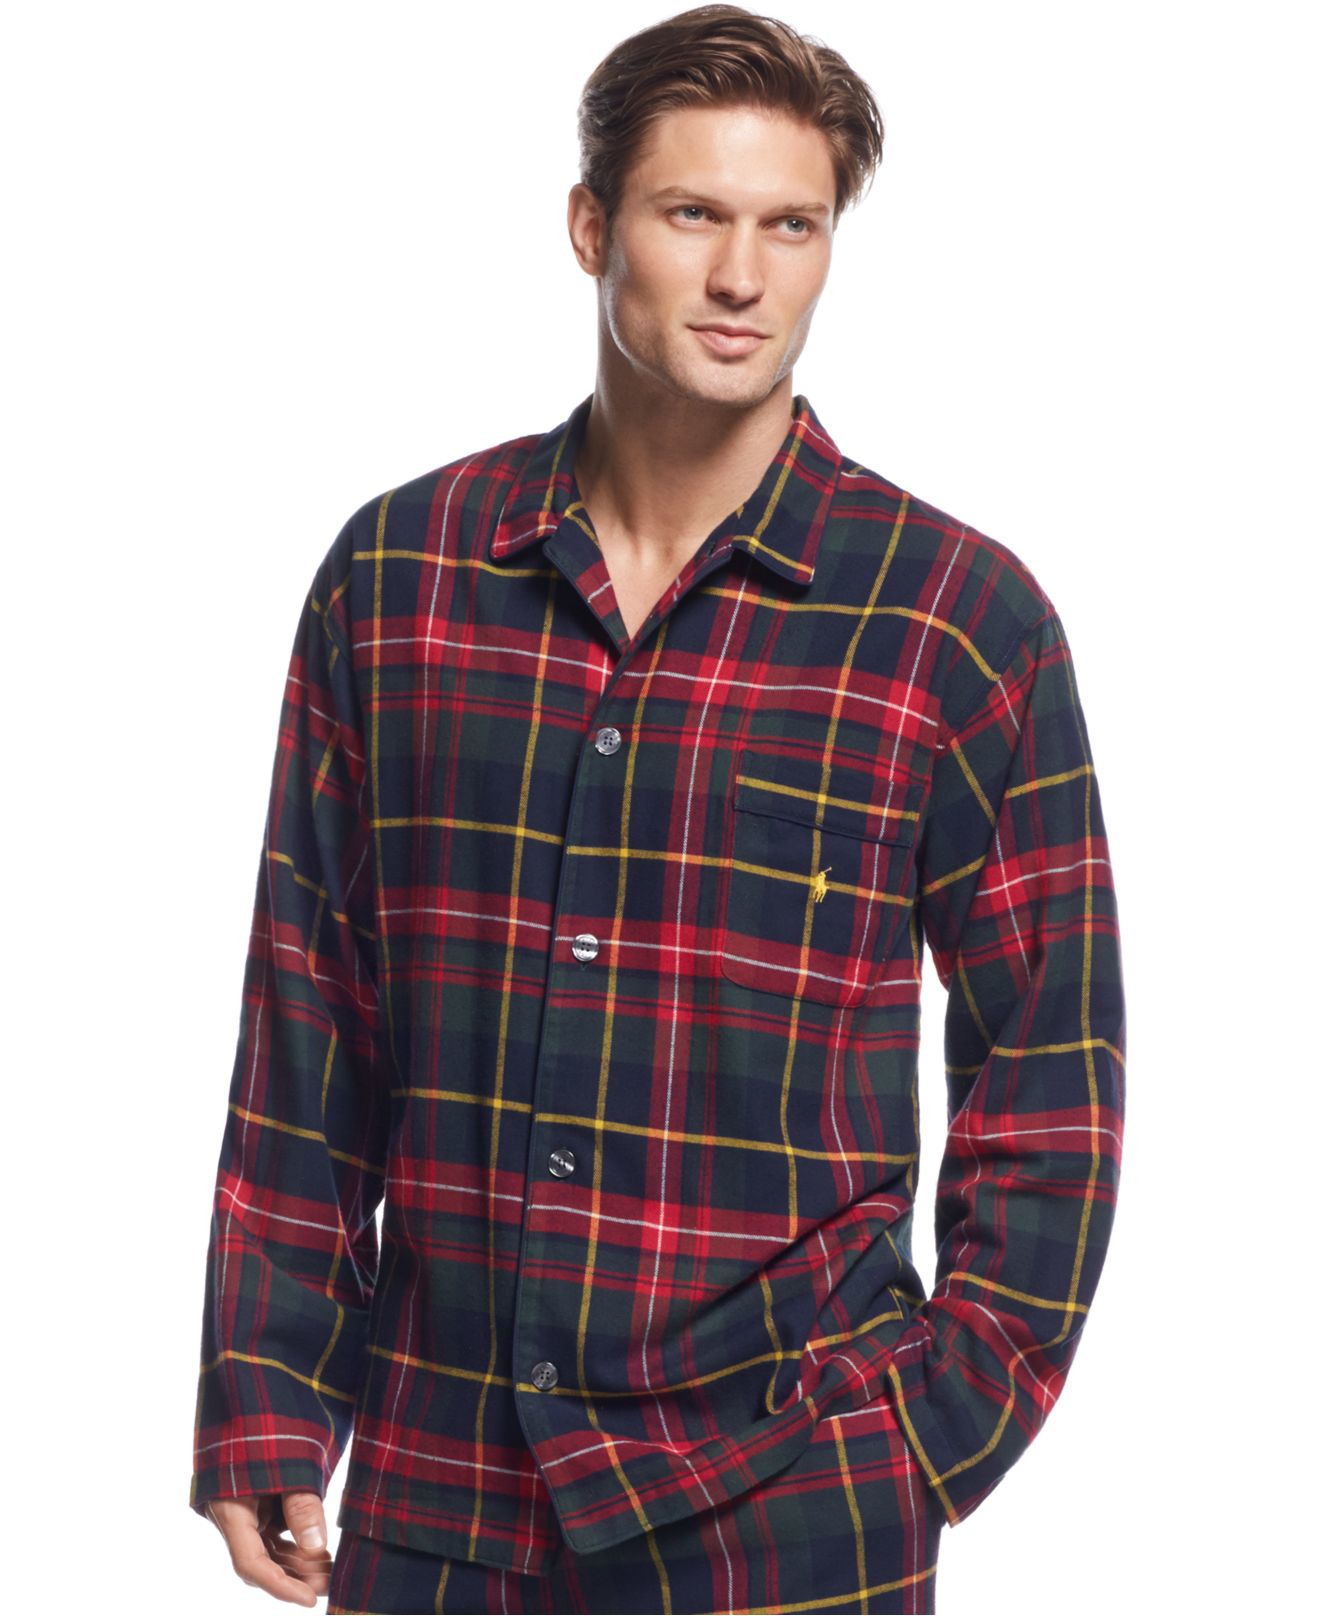 Men's Robes: Cozy Up in Style. Fend off that post-shower chill with insulating men's robes that keep you dry and warm. Choose from a variety of colors and styles, such as .